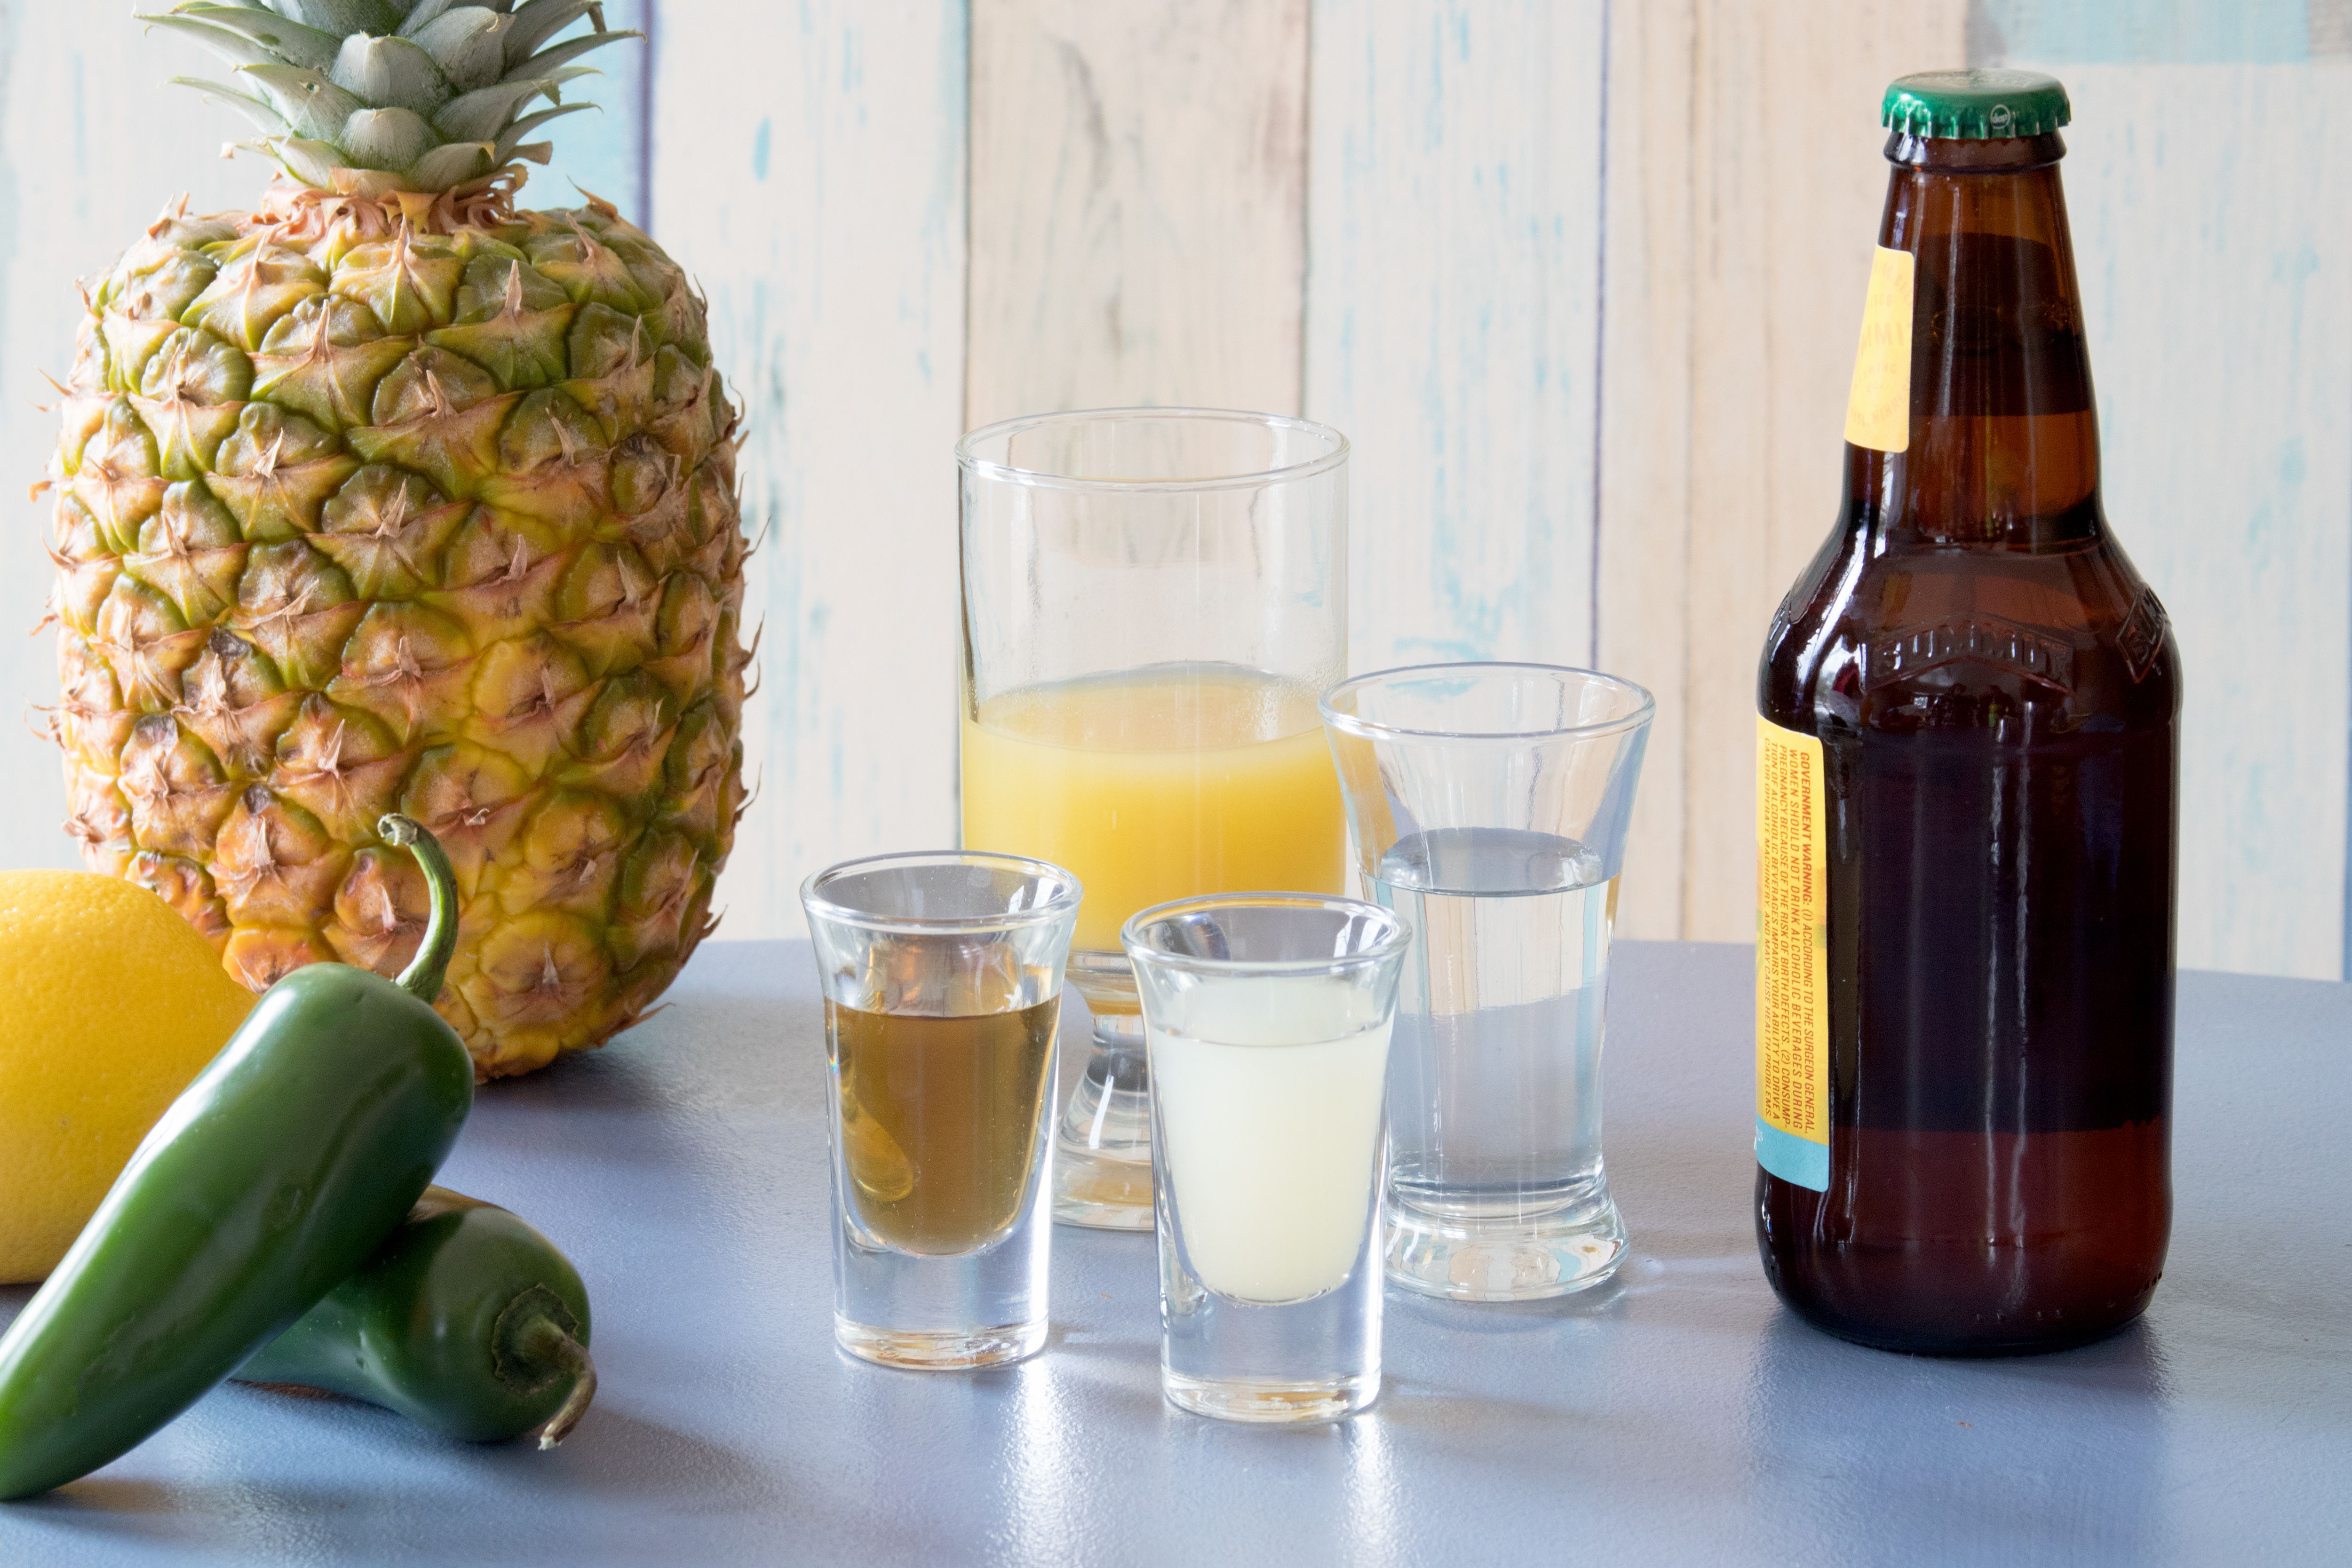 Ingredients for a Spicy Pineapple Shandy